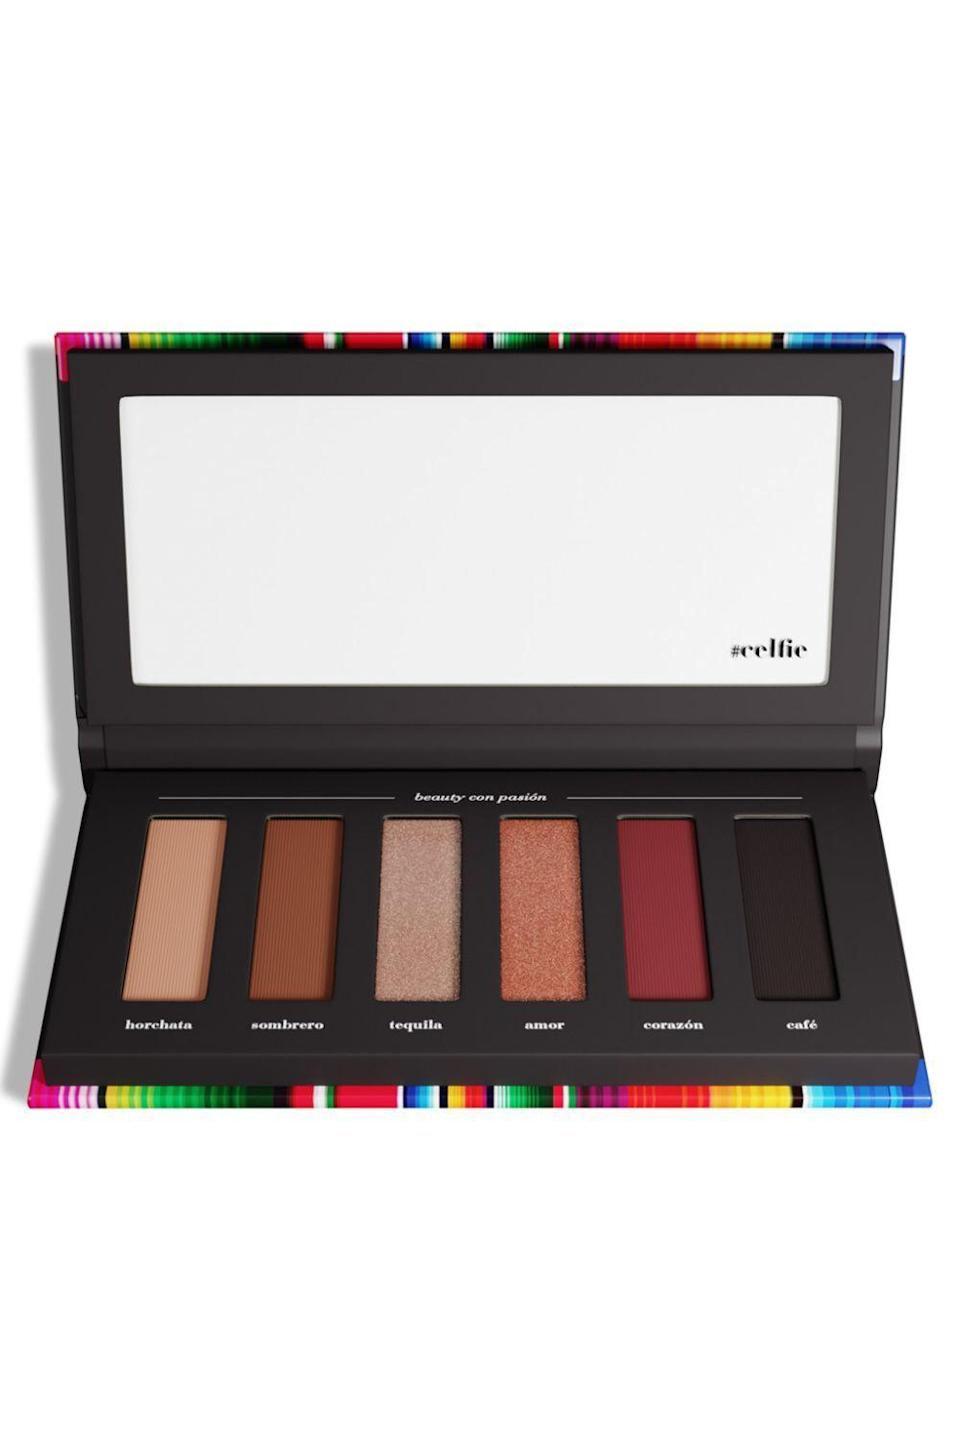 """<p>aracelibeauty.com</p><p><strong>$30.00</strong></p><p><a href=""""https://aracelibeauty.com/products/eye-shadow-palette"""" rel=""""nofollow noopener"""" target=""""_blank"""" data-ylk=""""slk:Shop Now"""" class=""""link rapid-noclick-resp"""">Shop Now</a></p><p>All you need are these six shades to pull together a multitude of makeup looks for both daytime and nighttime. Create a '90s-inspired<strong> <a href=""""https://www.cosmopolitan.com/style-beauty/beauty/how-to/g3016/smoky-eye-how-to/"""" rel=""""nofollow noopener"""" target=""""_blank"""" data-ylk=""""slk:smokey eye"""" class=""""link rapid-noclick-resp"""">smokey eye</a> with the soft, warm, and dark brown matte shadows</strong>, or throw in a few of the shimmers and the rich red to punch it up a bit. </p>"""